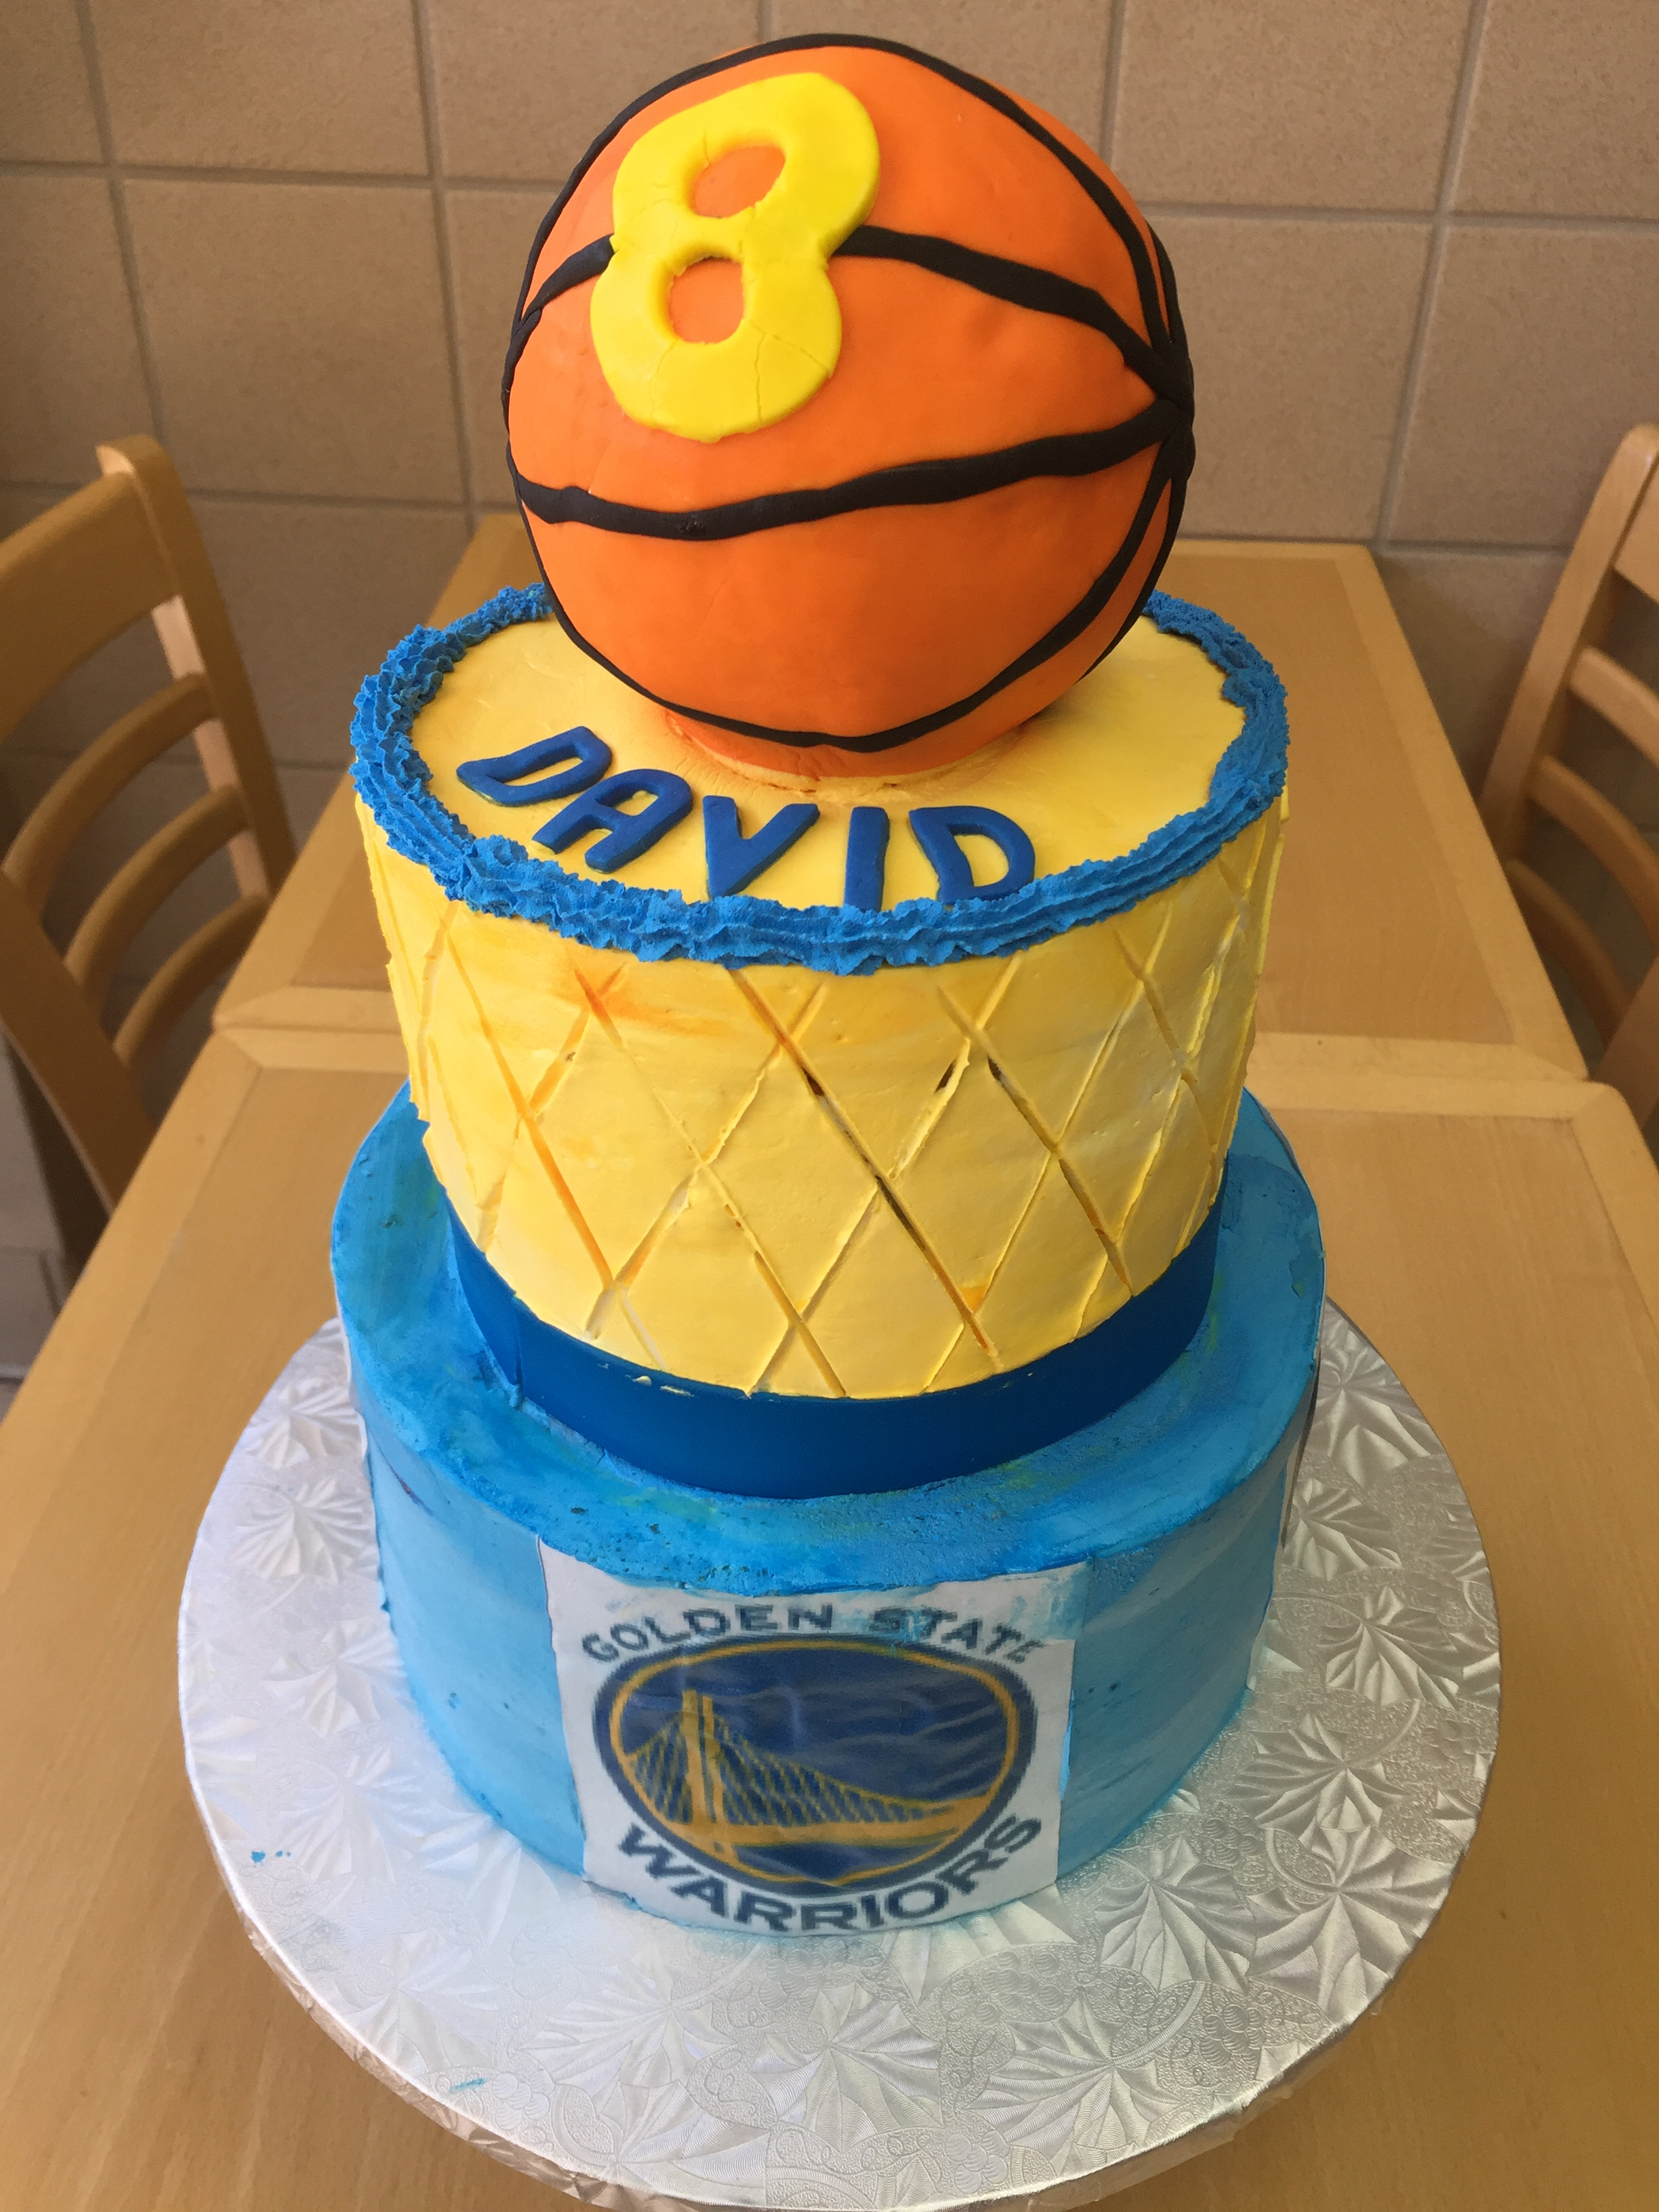 Golden State Warriors Birthday Cake – Wild Berries Bakery and Cafe